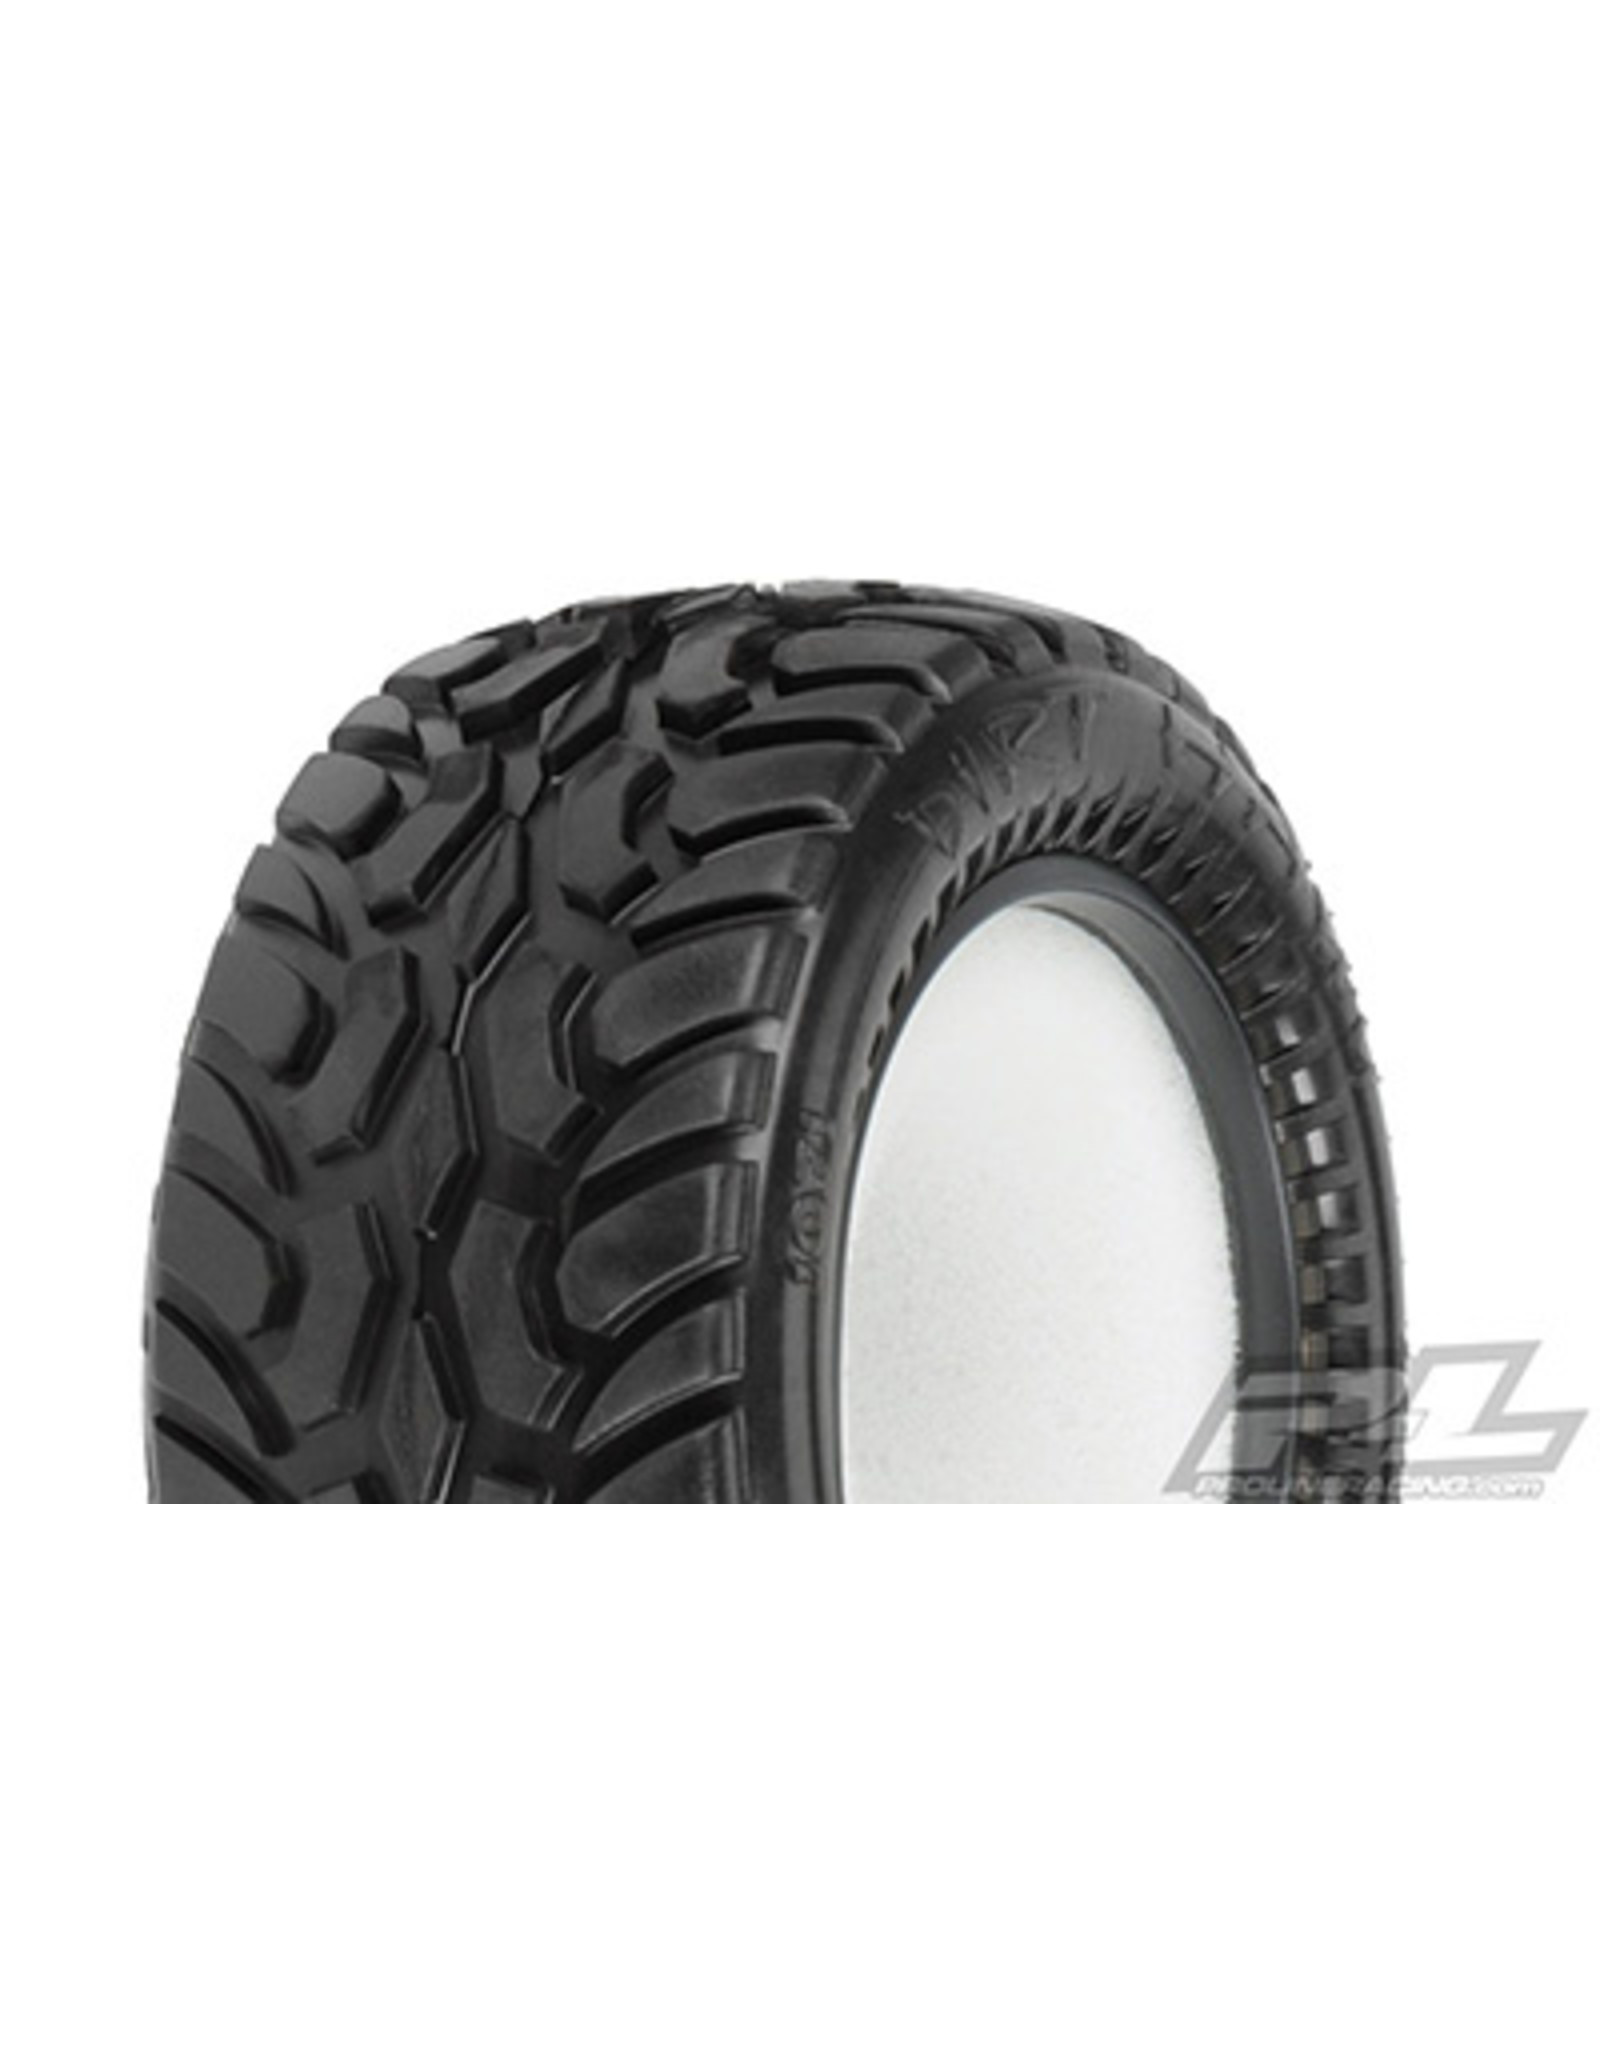 """Pro-Line Racing Dirt Hawg I 2.2"""" M2 All Terrain Buggy Rear Tires (PRO107100)"""